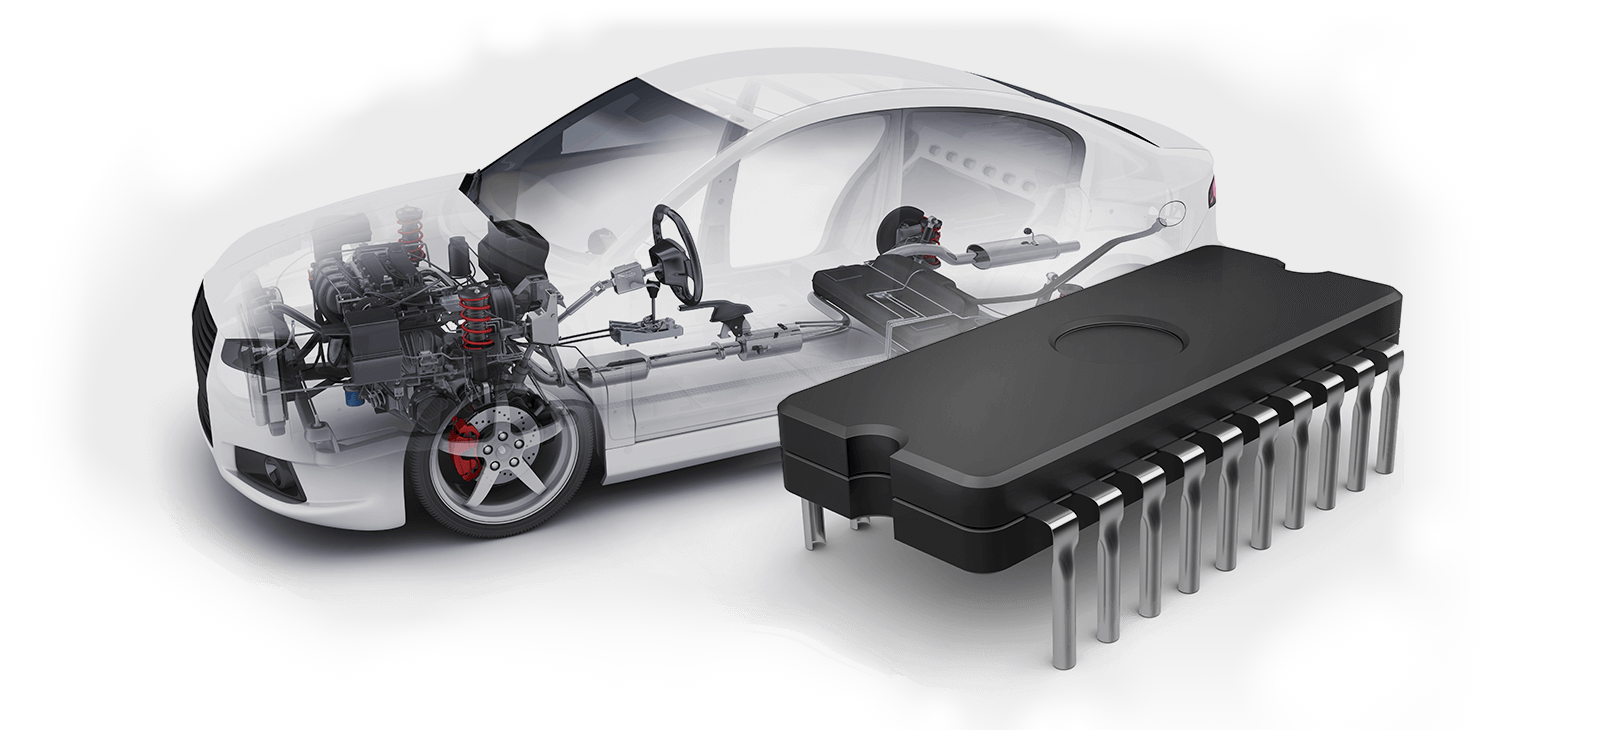 future automotive systems